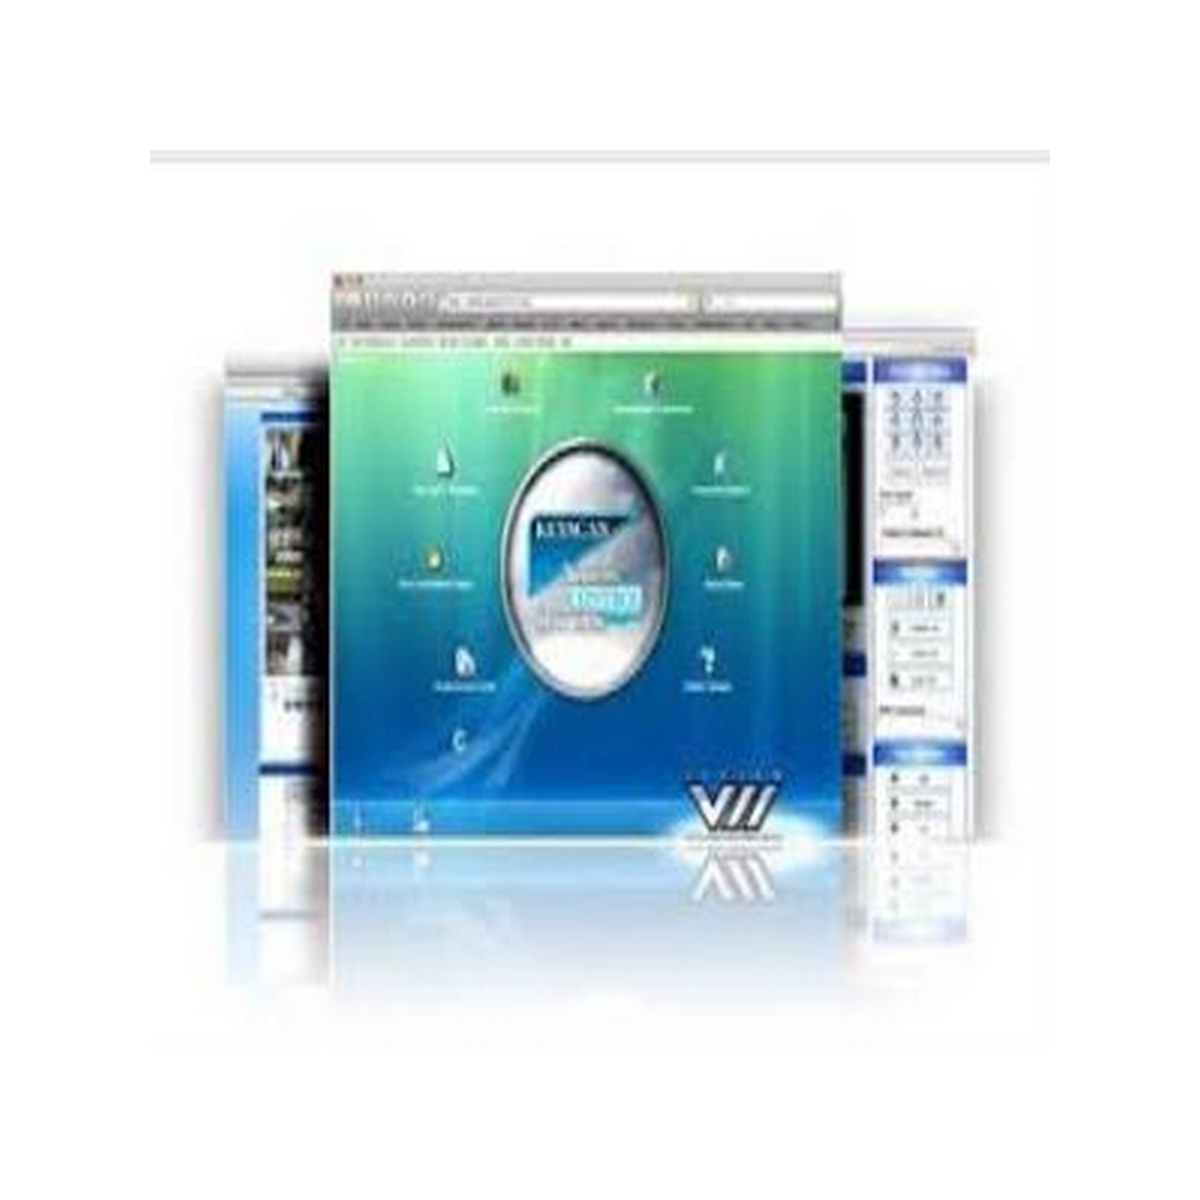 Keyscan SYSTEM VII  Access control software